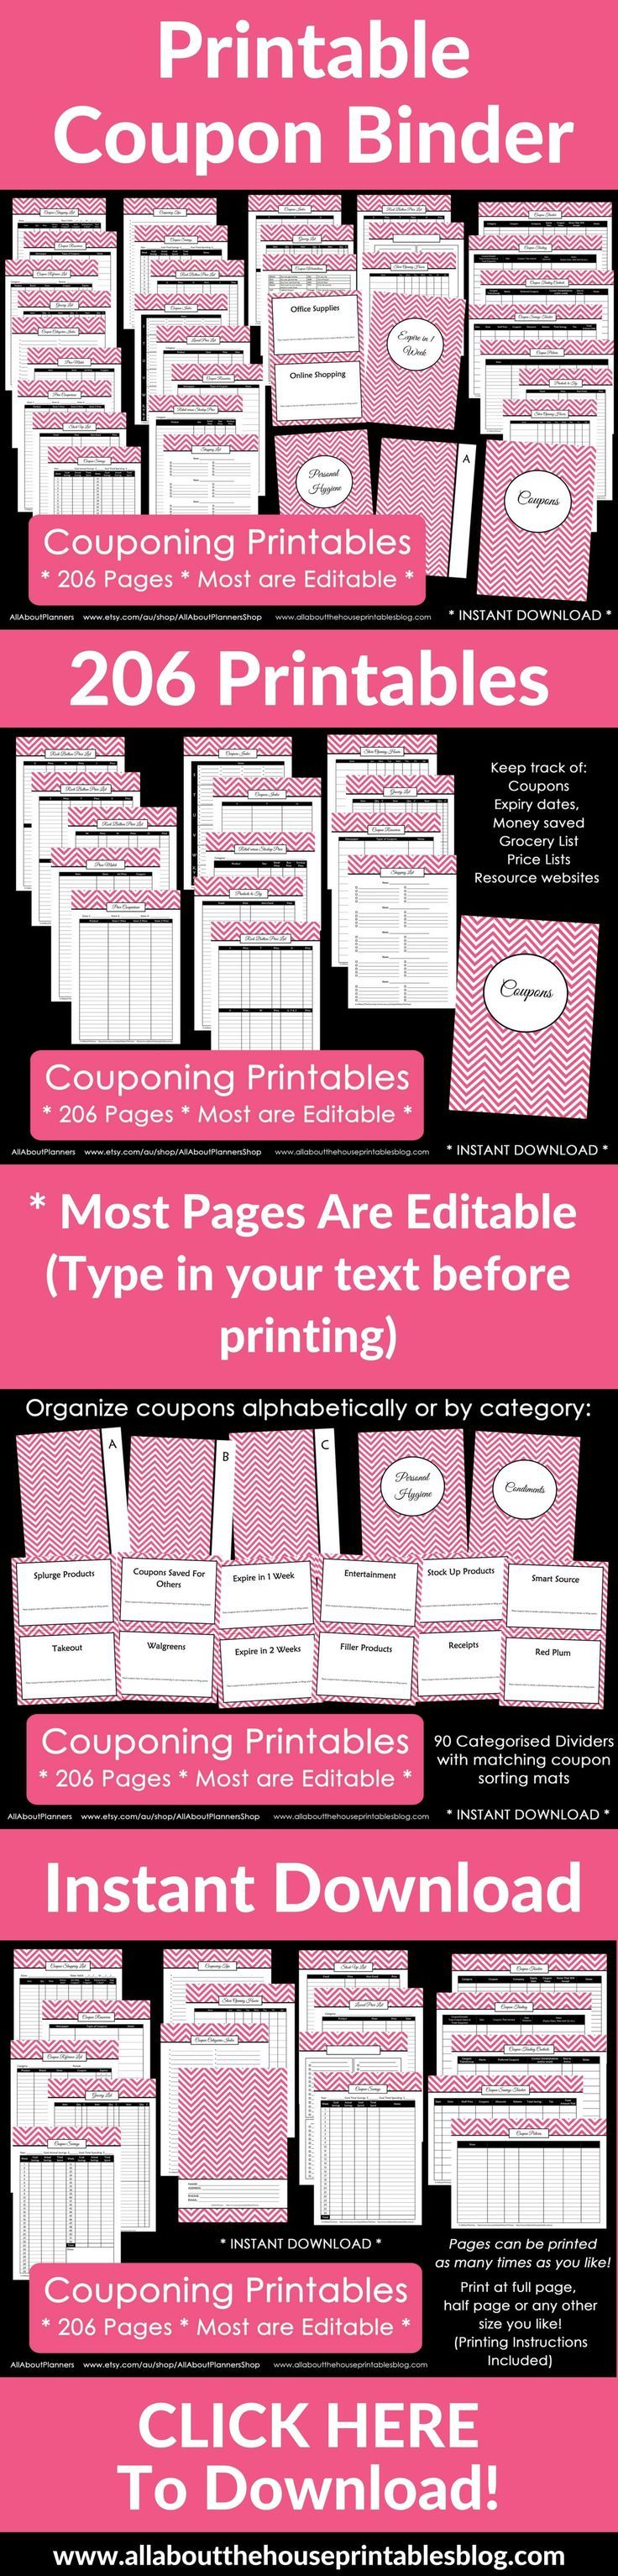 Coupon Master Clipping Service - How to make a coupon binder and keep it organized plus printables